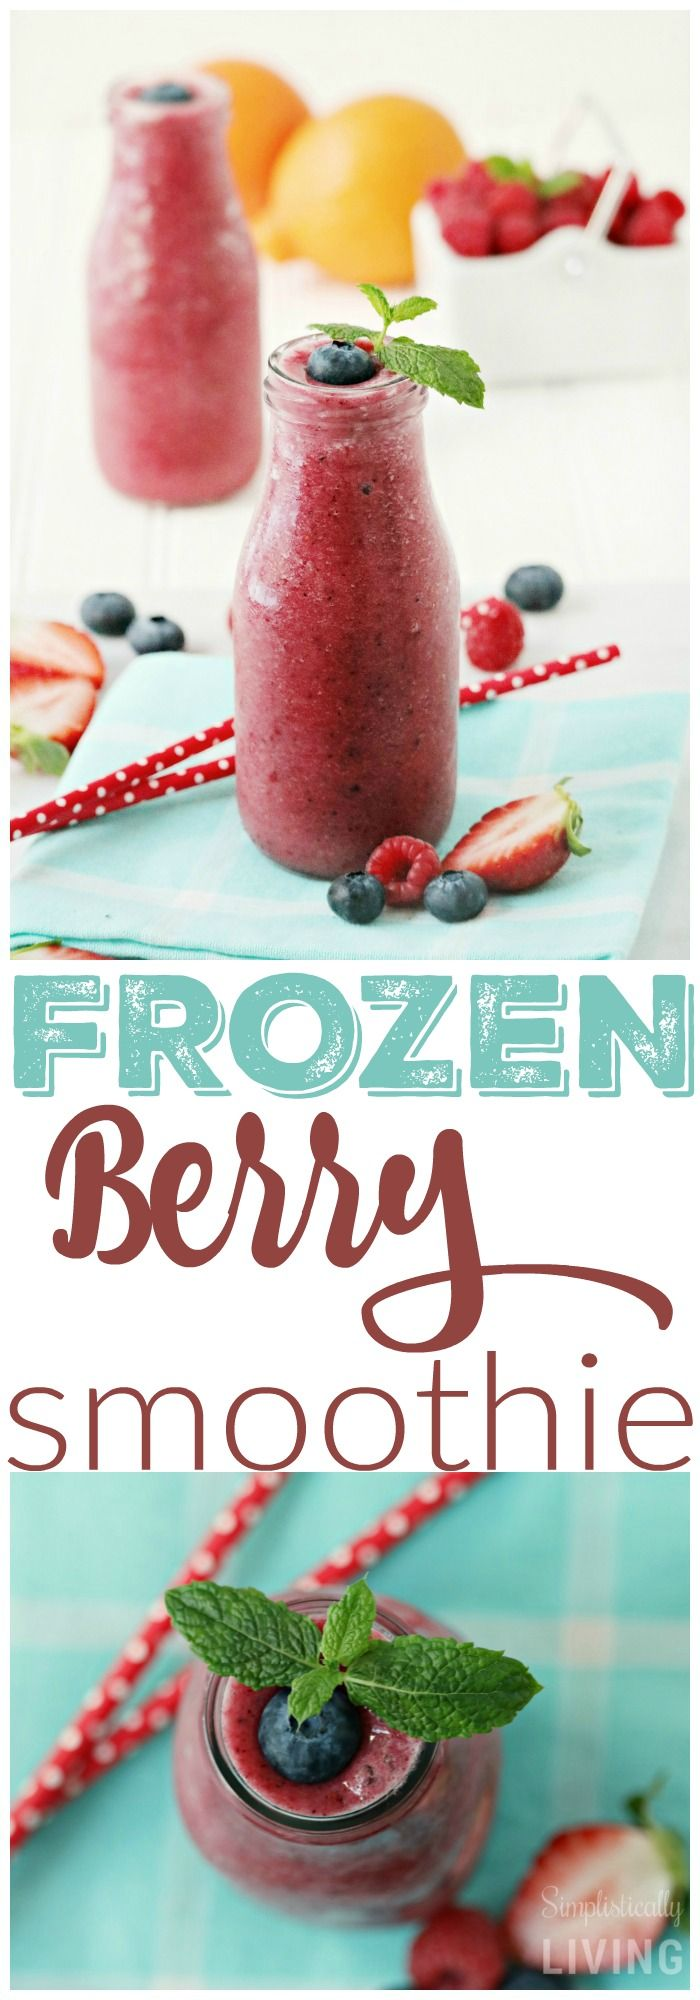 Frozen Berry Smoothie Simplistically Living